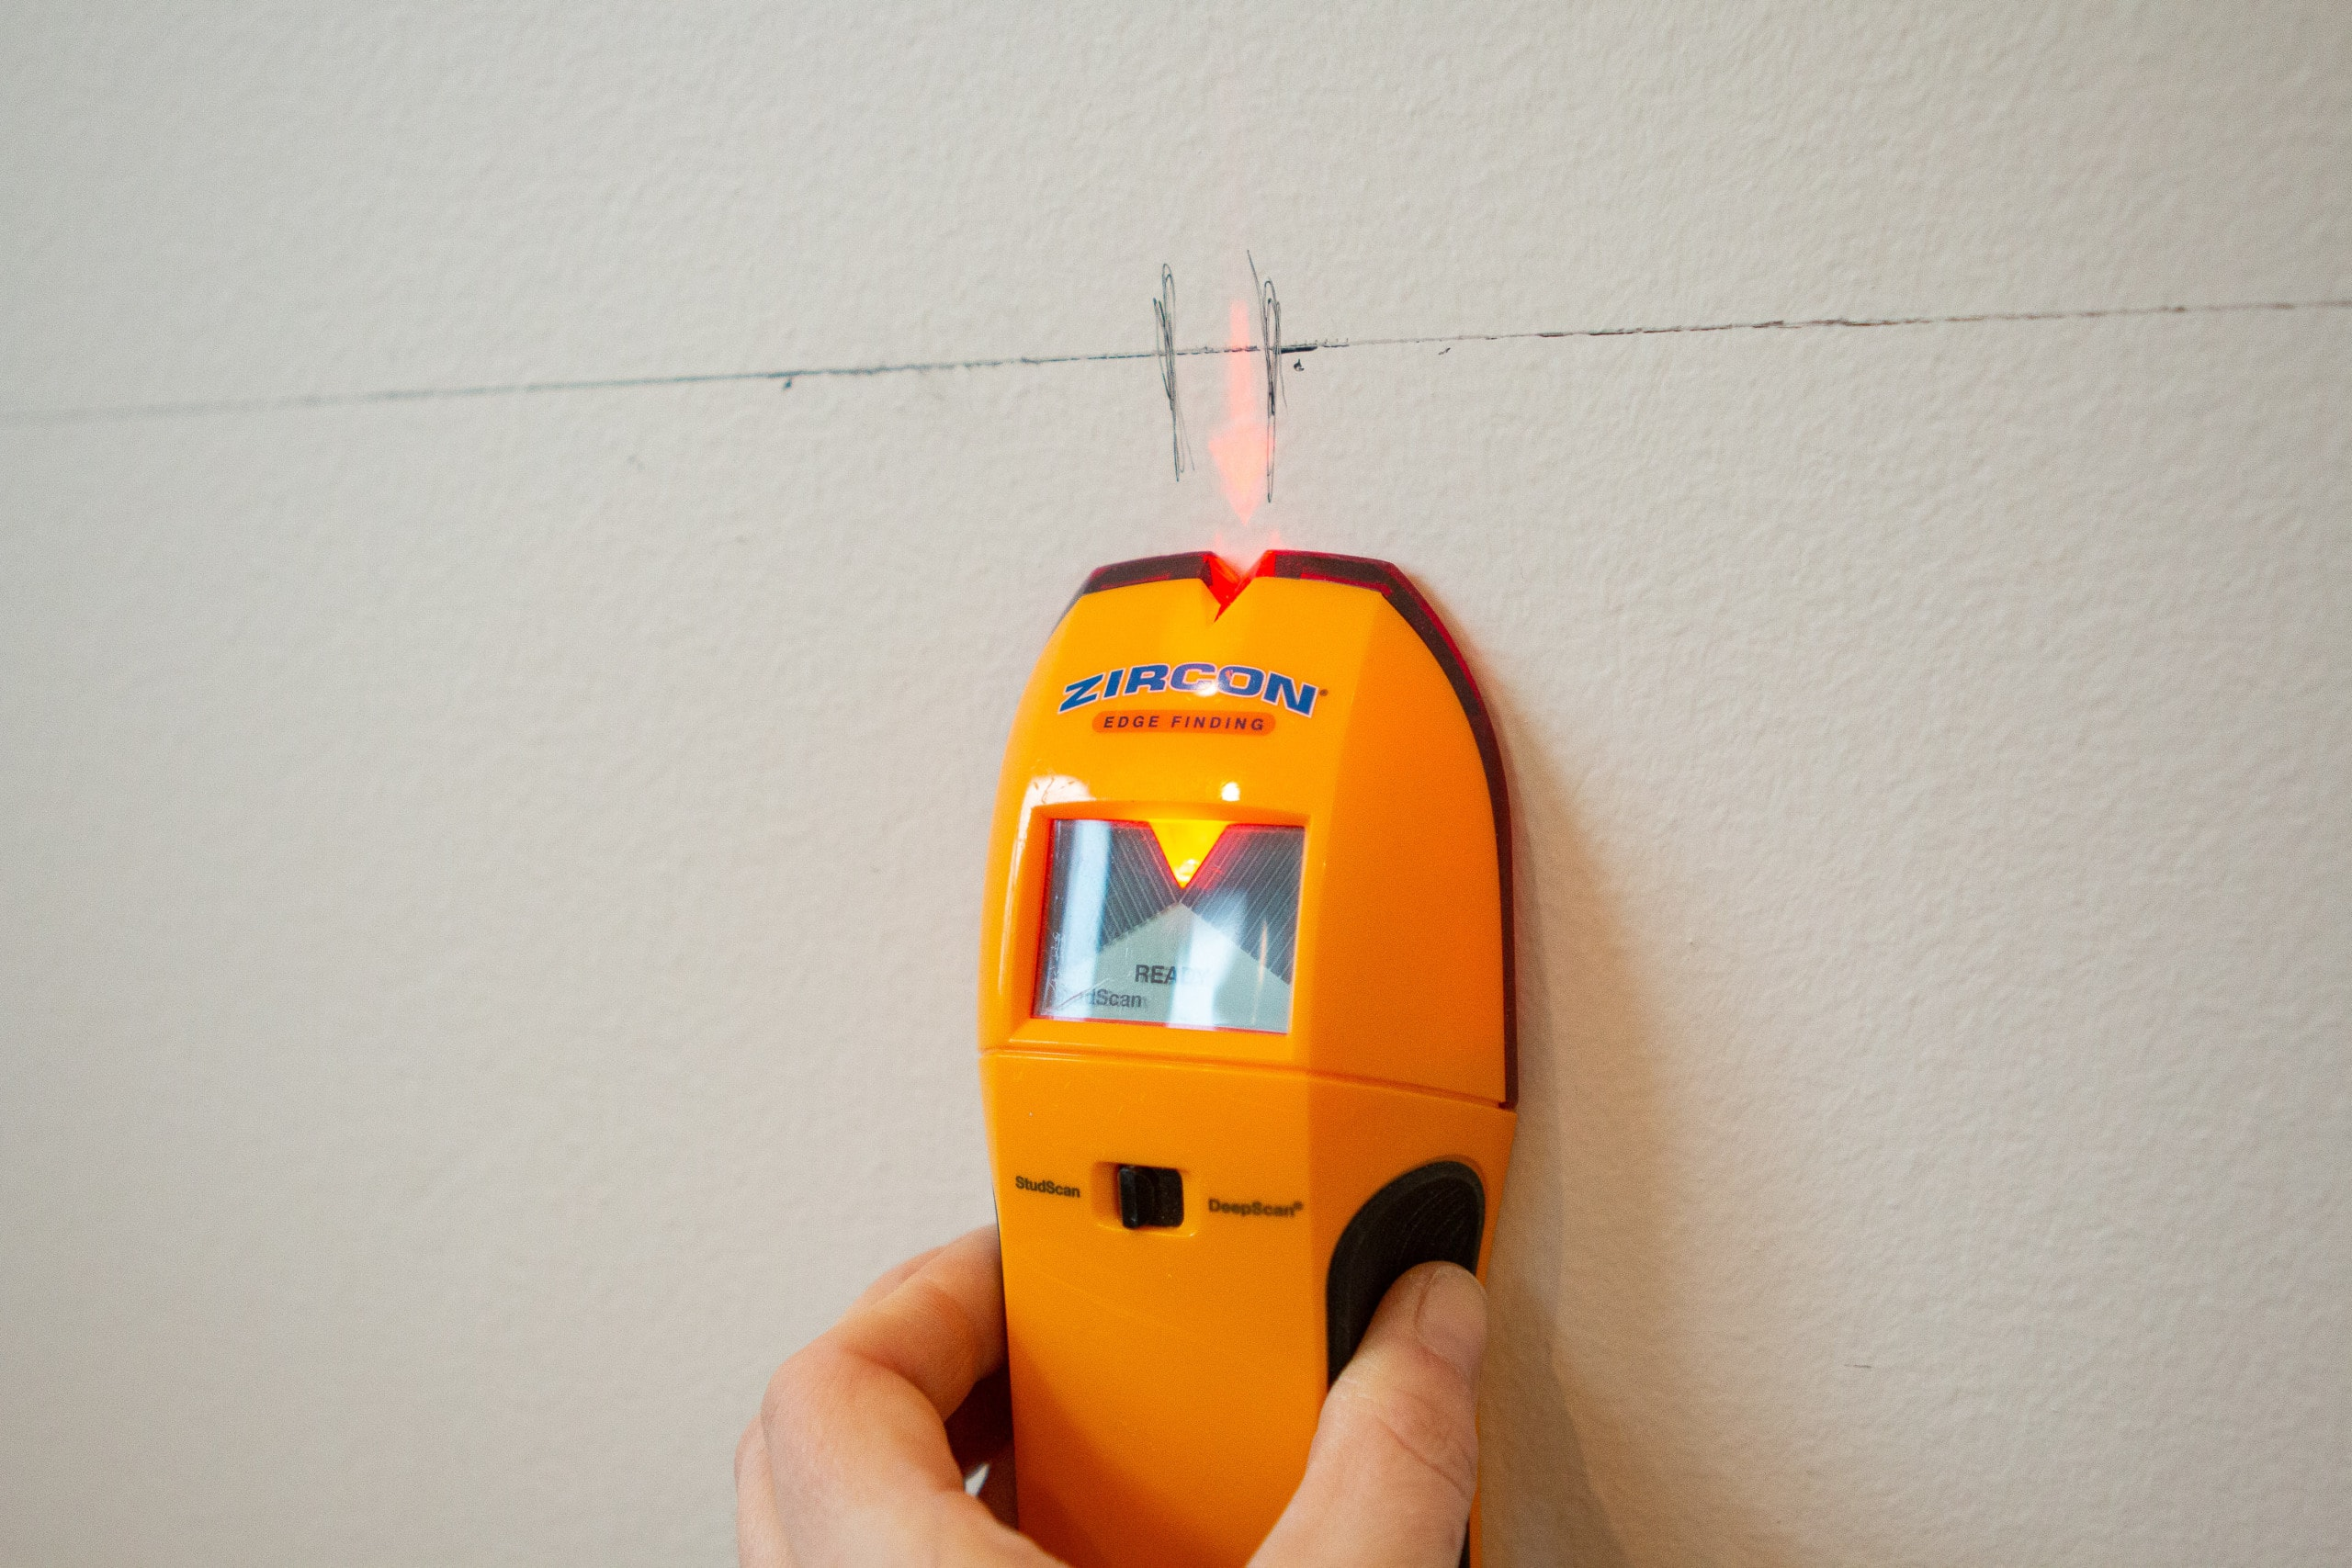 Using a stud finder to find studs